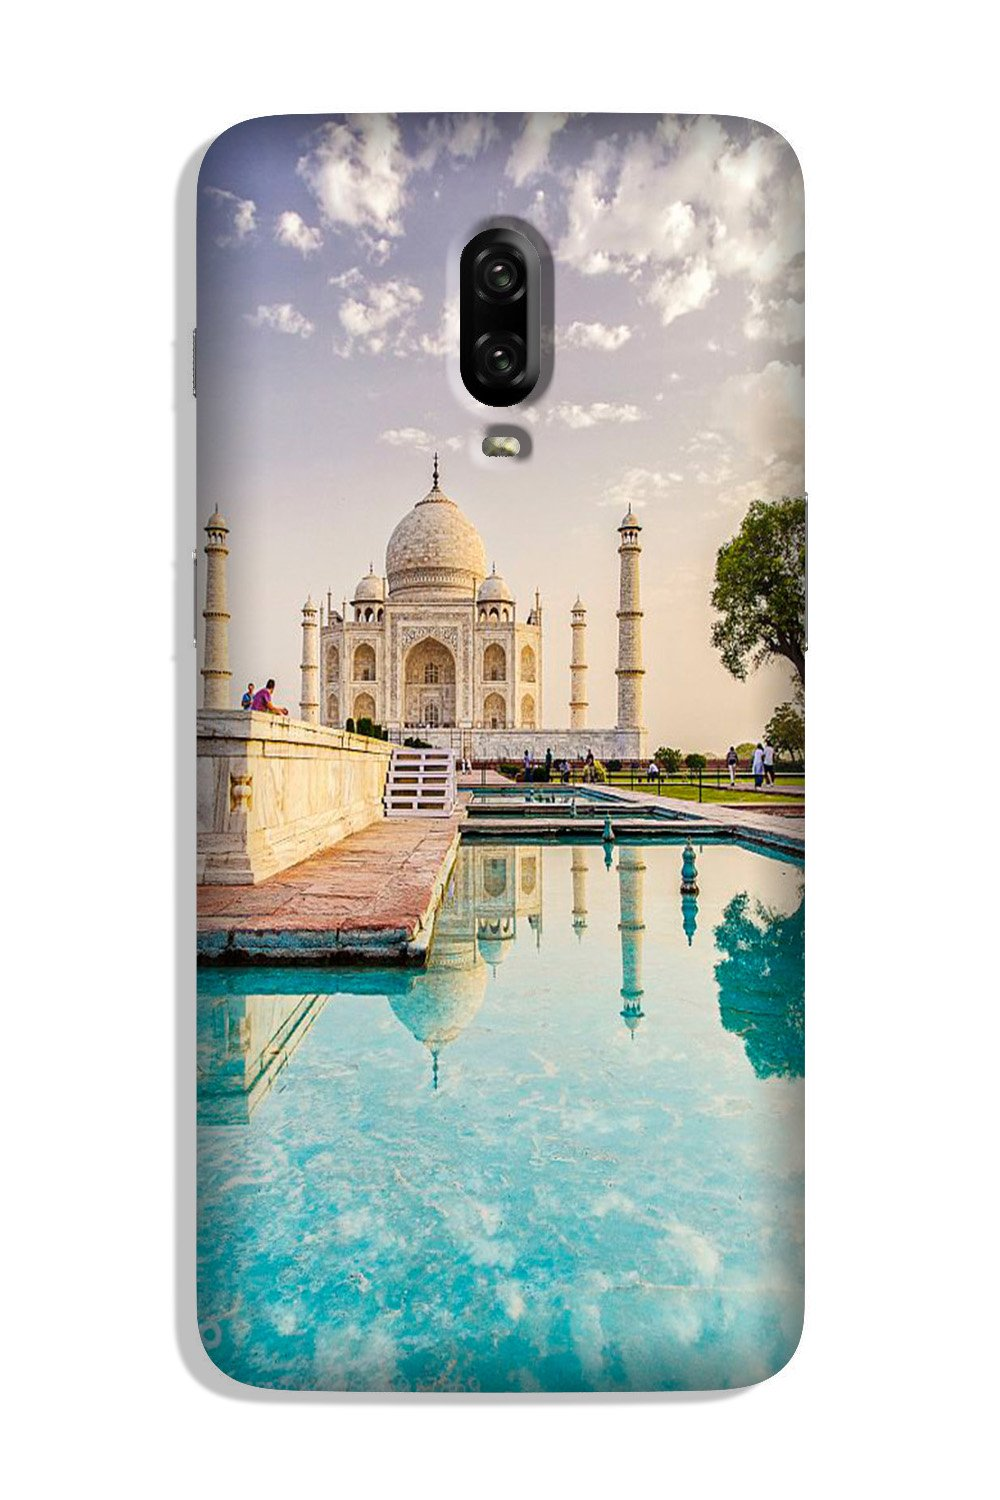 Taj Mahal Case for OnePlus 6T (Design No. 297)